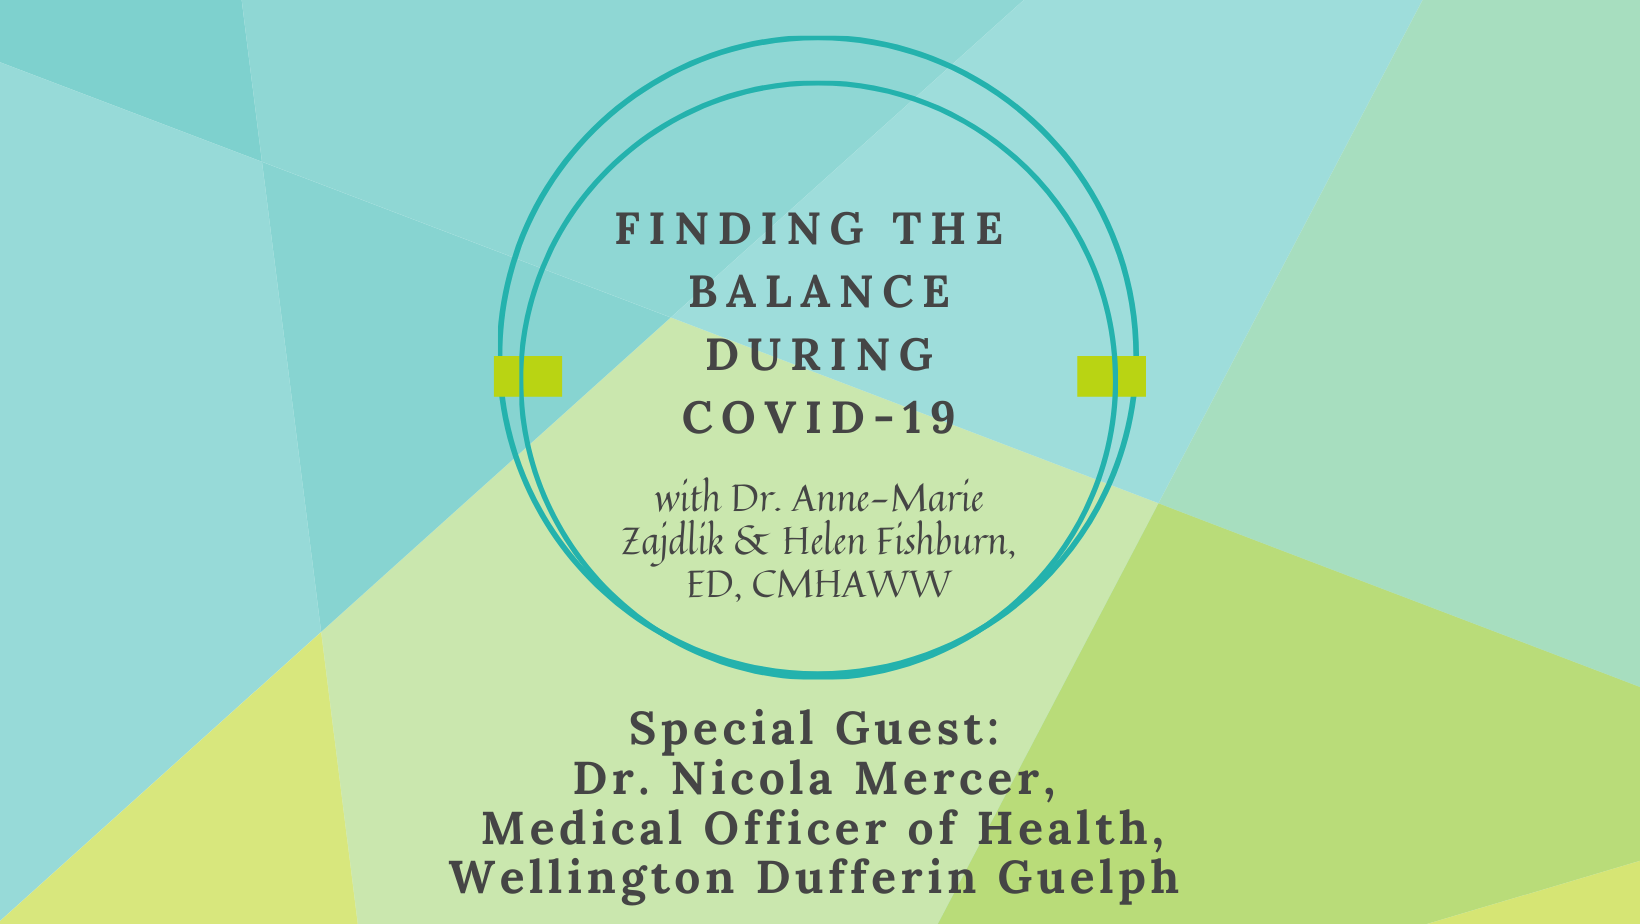 Finding the Balance during COVID-19 with Dr. Mercer